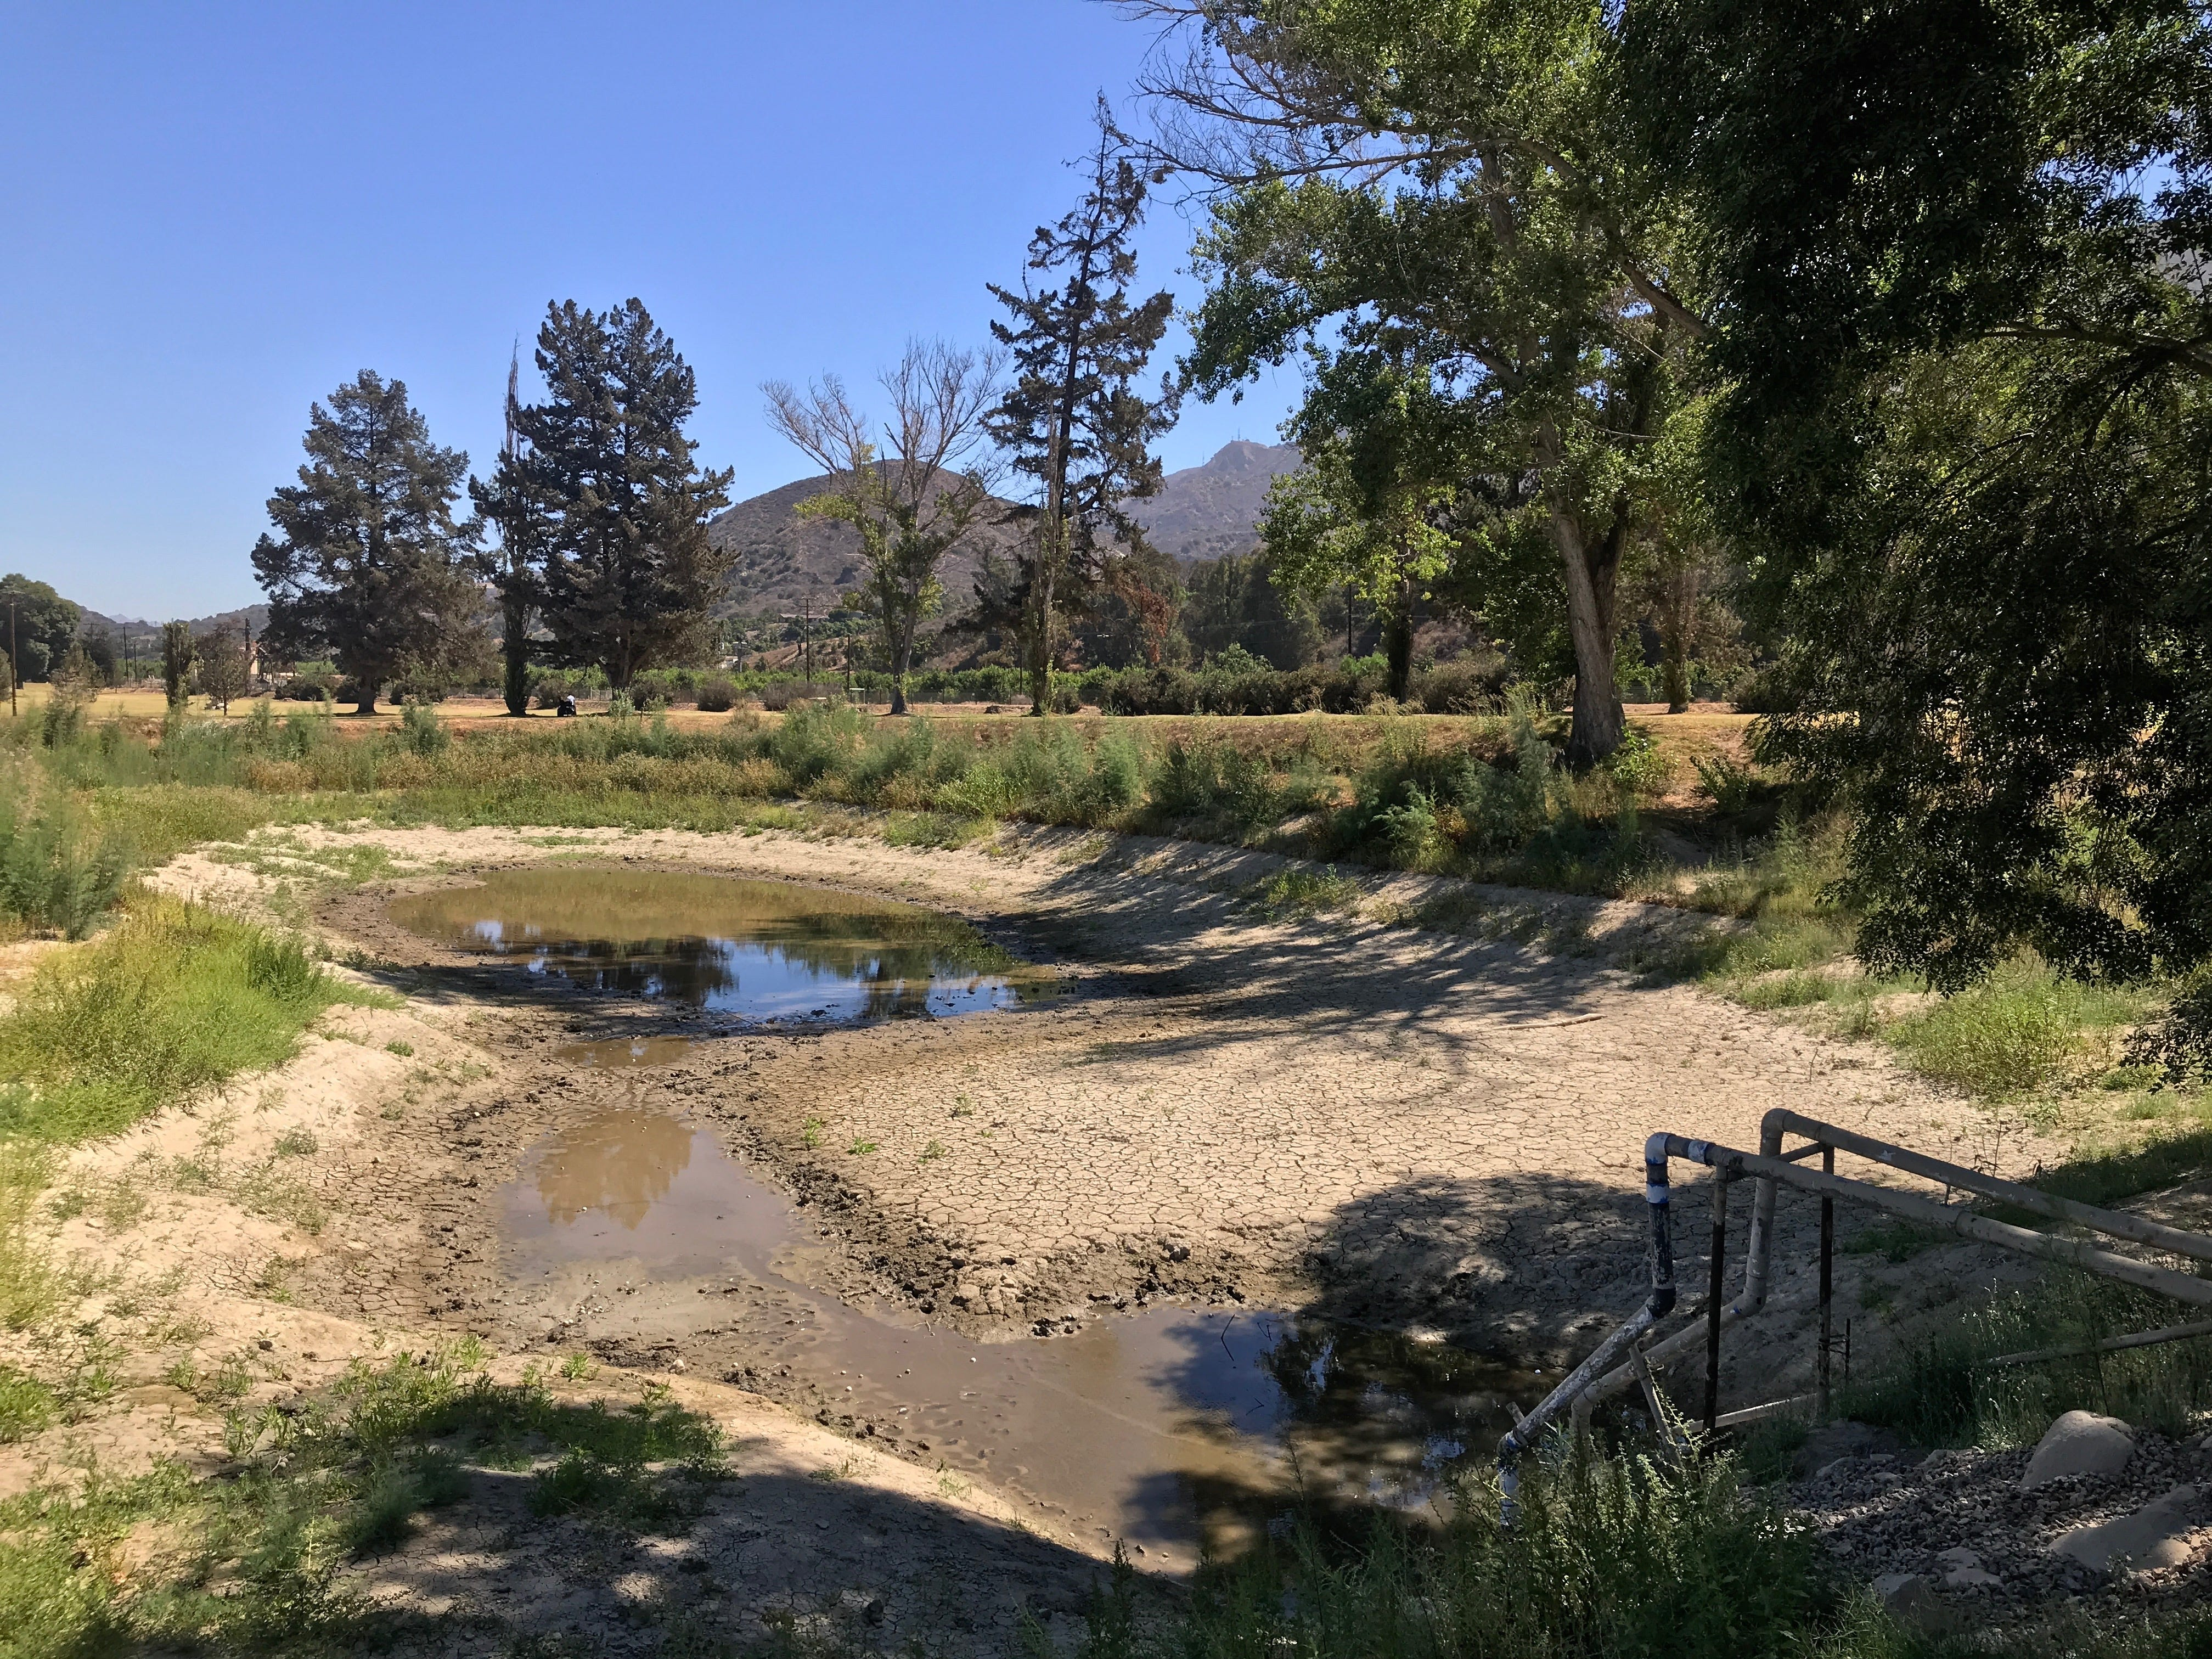 A photo from earlier this year shows the remains of a lake that used to store up to 1.7 million gallons of water from the Santa Clara River for use on the Mountain View Golf Course. Now the river is dry and the course is closing.